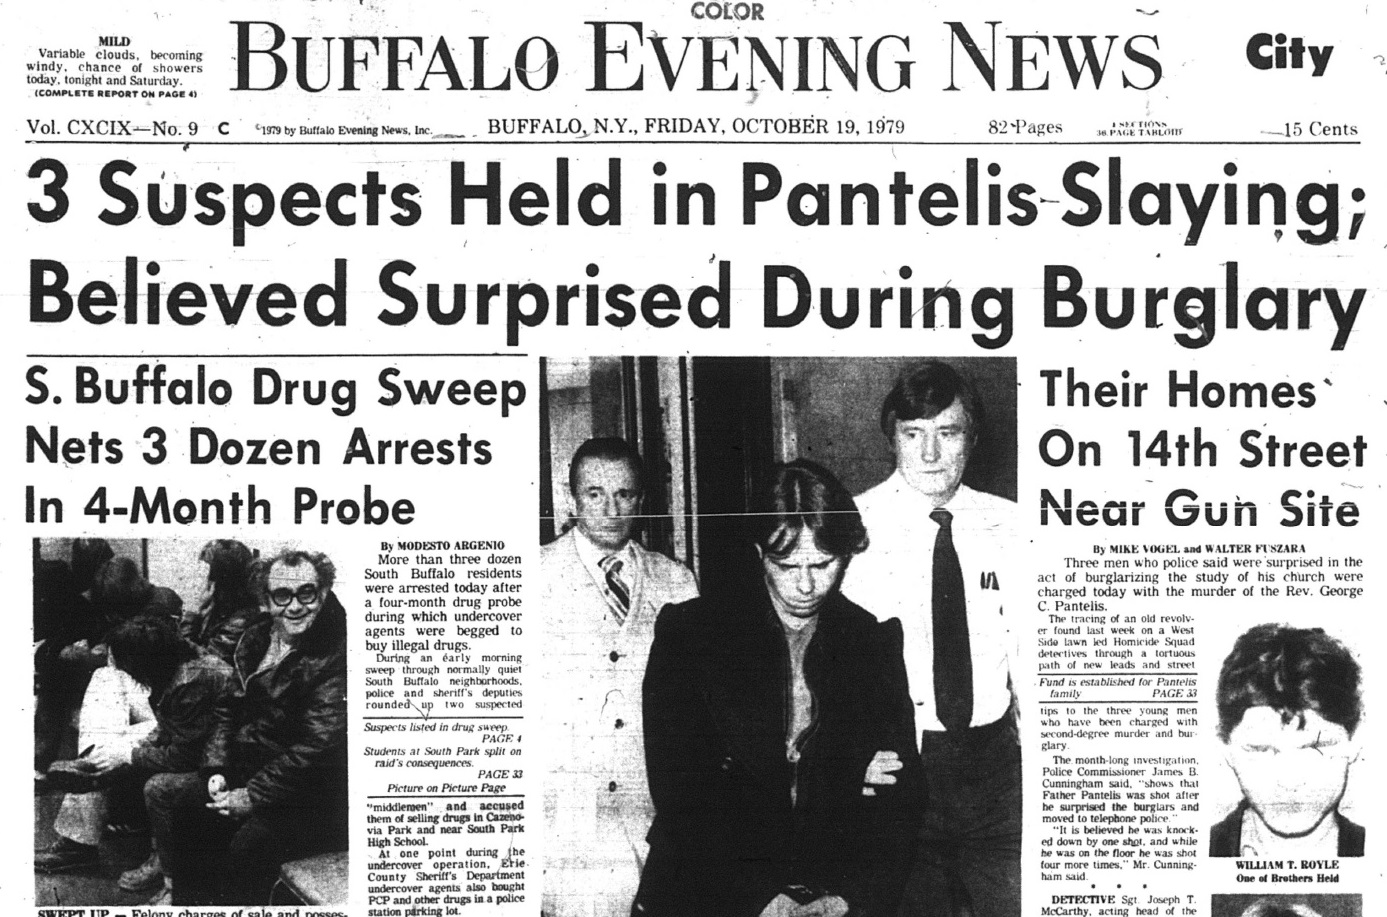 The front page of the Buffalo Evening News from Oct. 18, 1979, following the arrest of William Royle, Kevin Royle, and Joseph Mann for the Sept. 16, 1979, slaying of Greek Orthodox priest, Father George C. Pantelis.